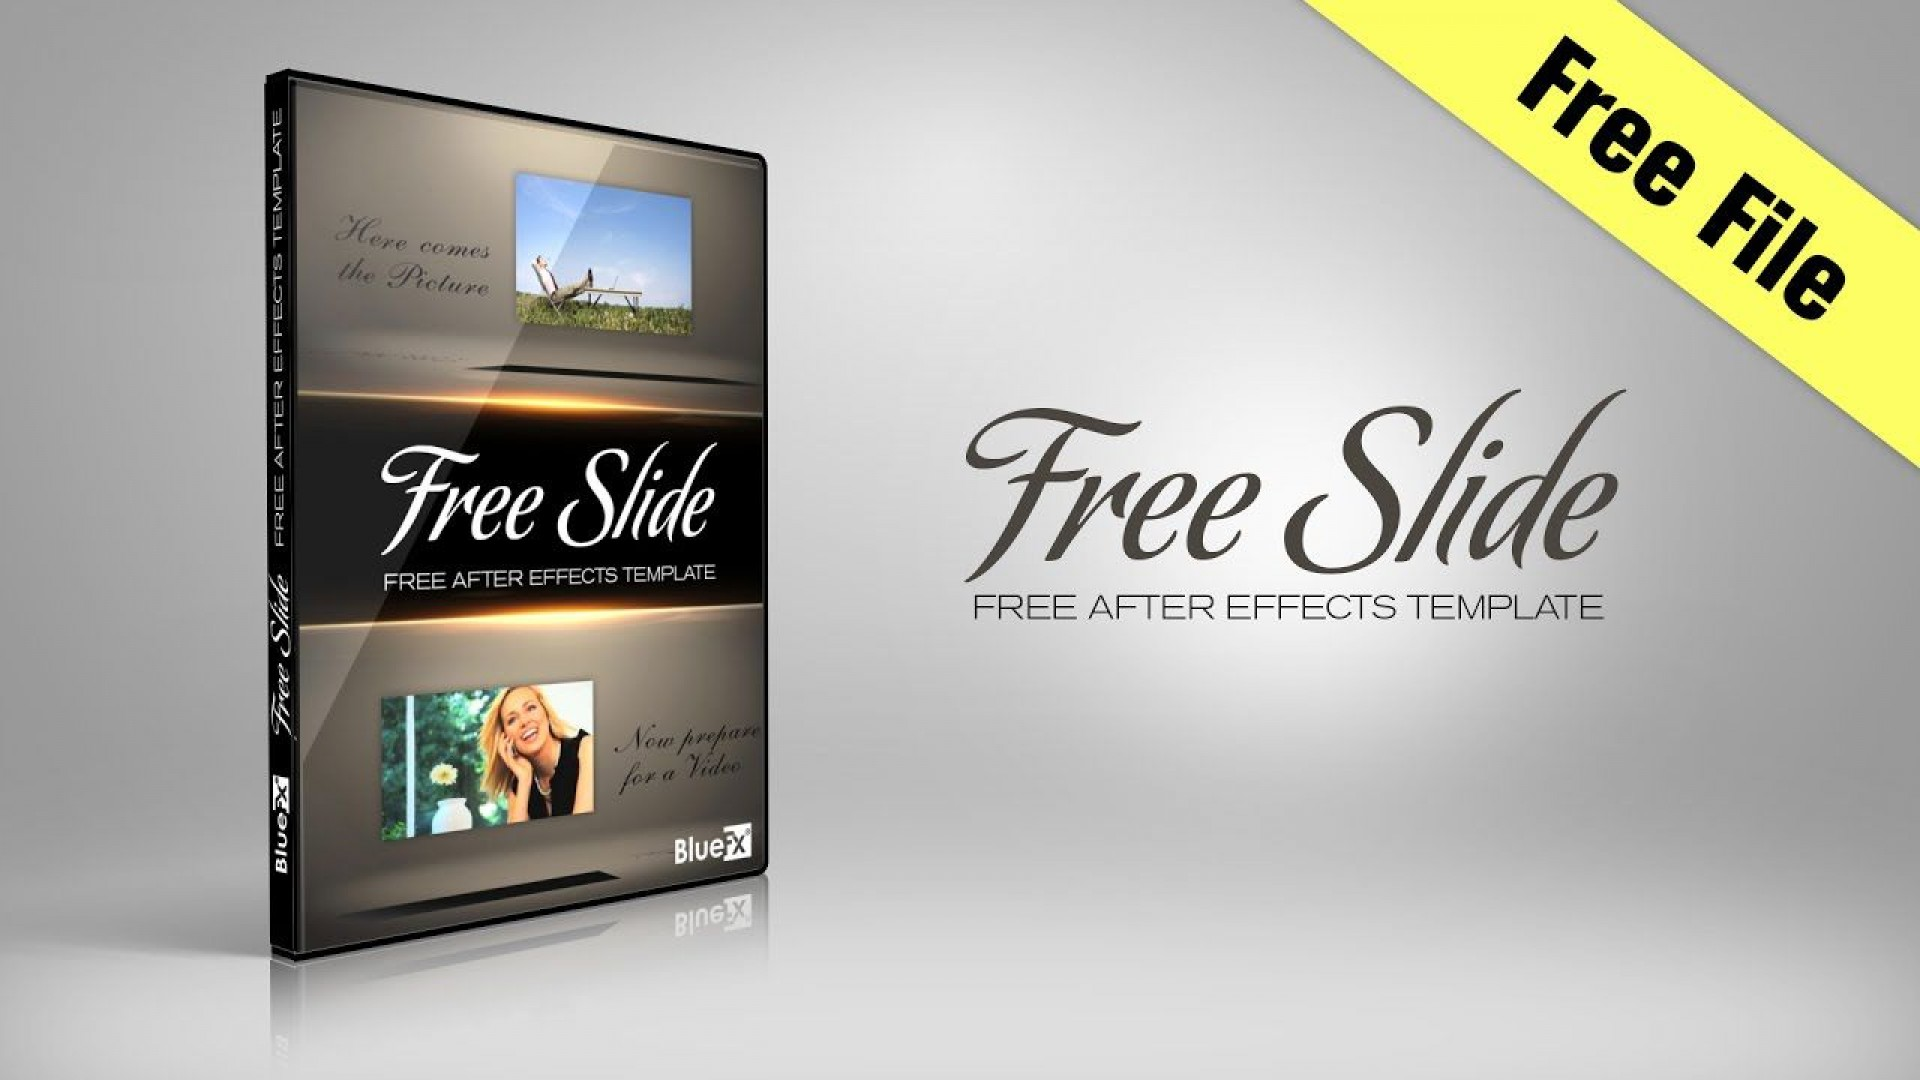 002 Excellent Free After Effect Slideshow Template Picture  Download Free-after-effects-slideshow-templates-9481920